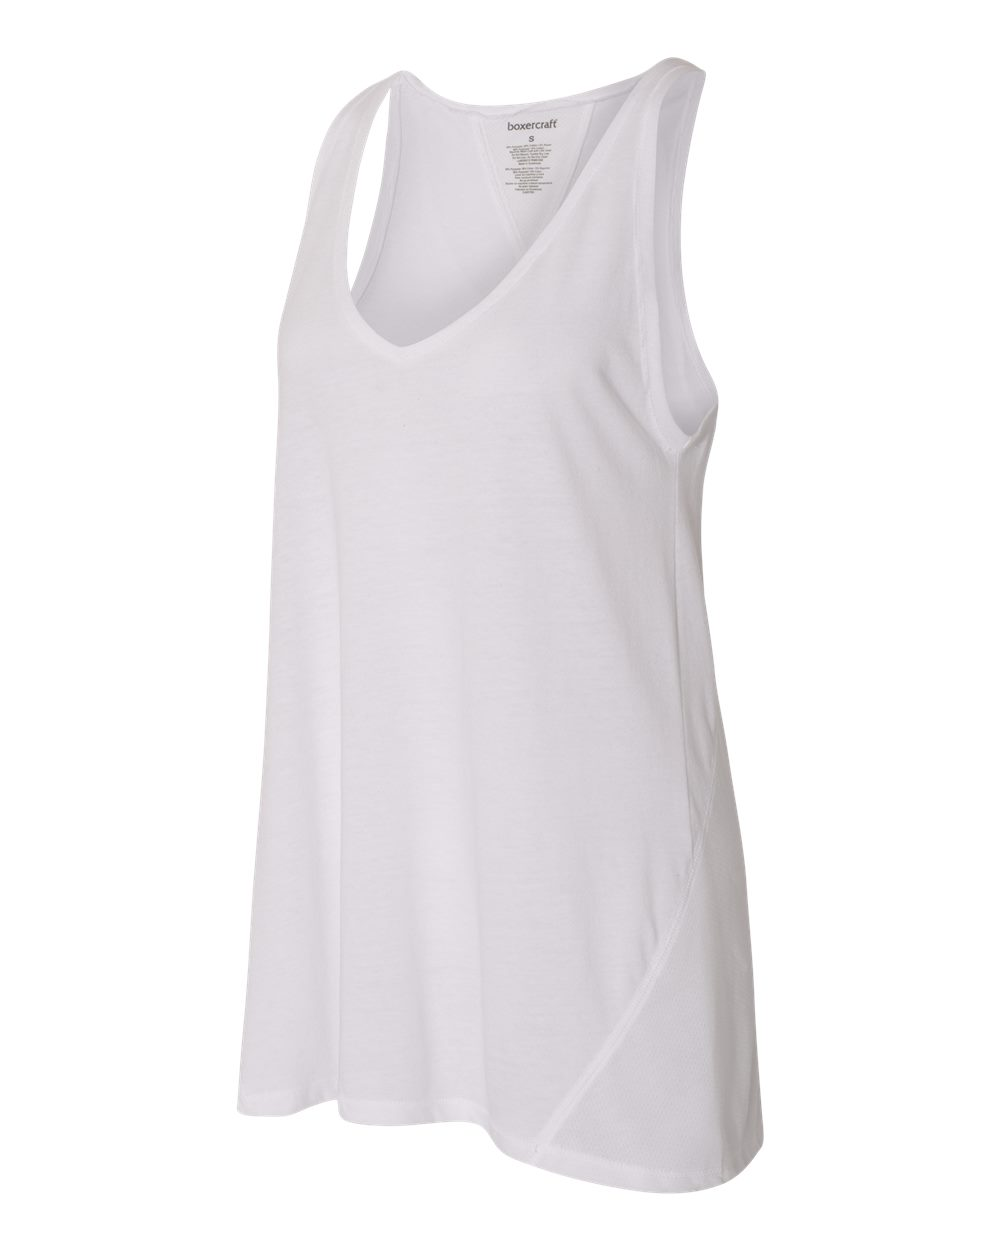 Boxercraft S80 - Women's Crossline Tank